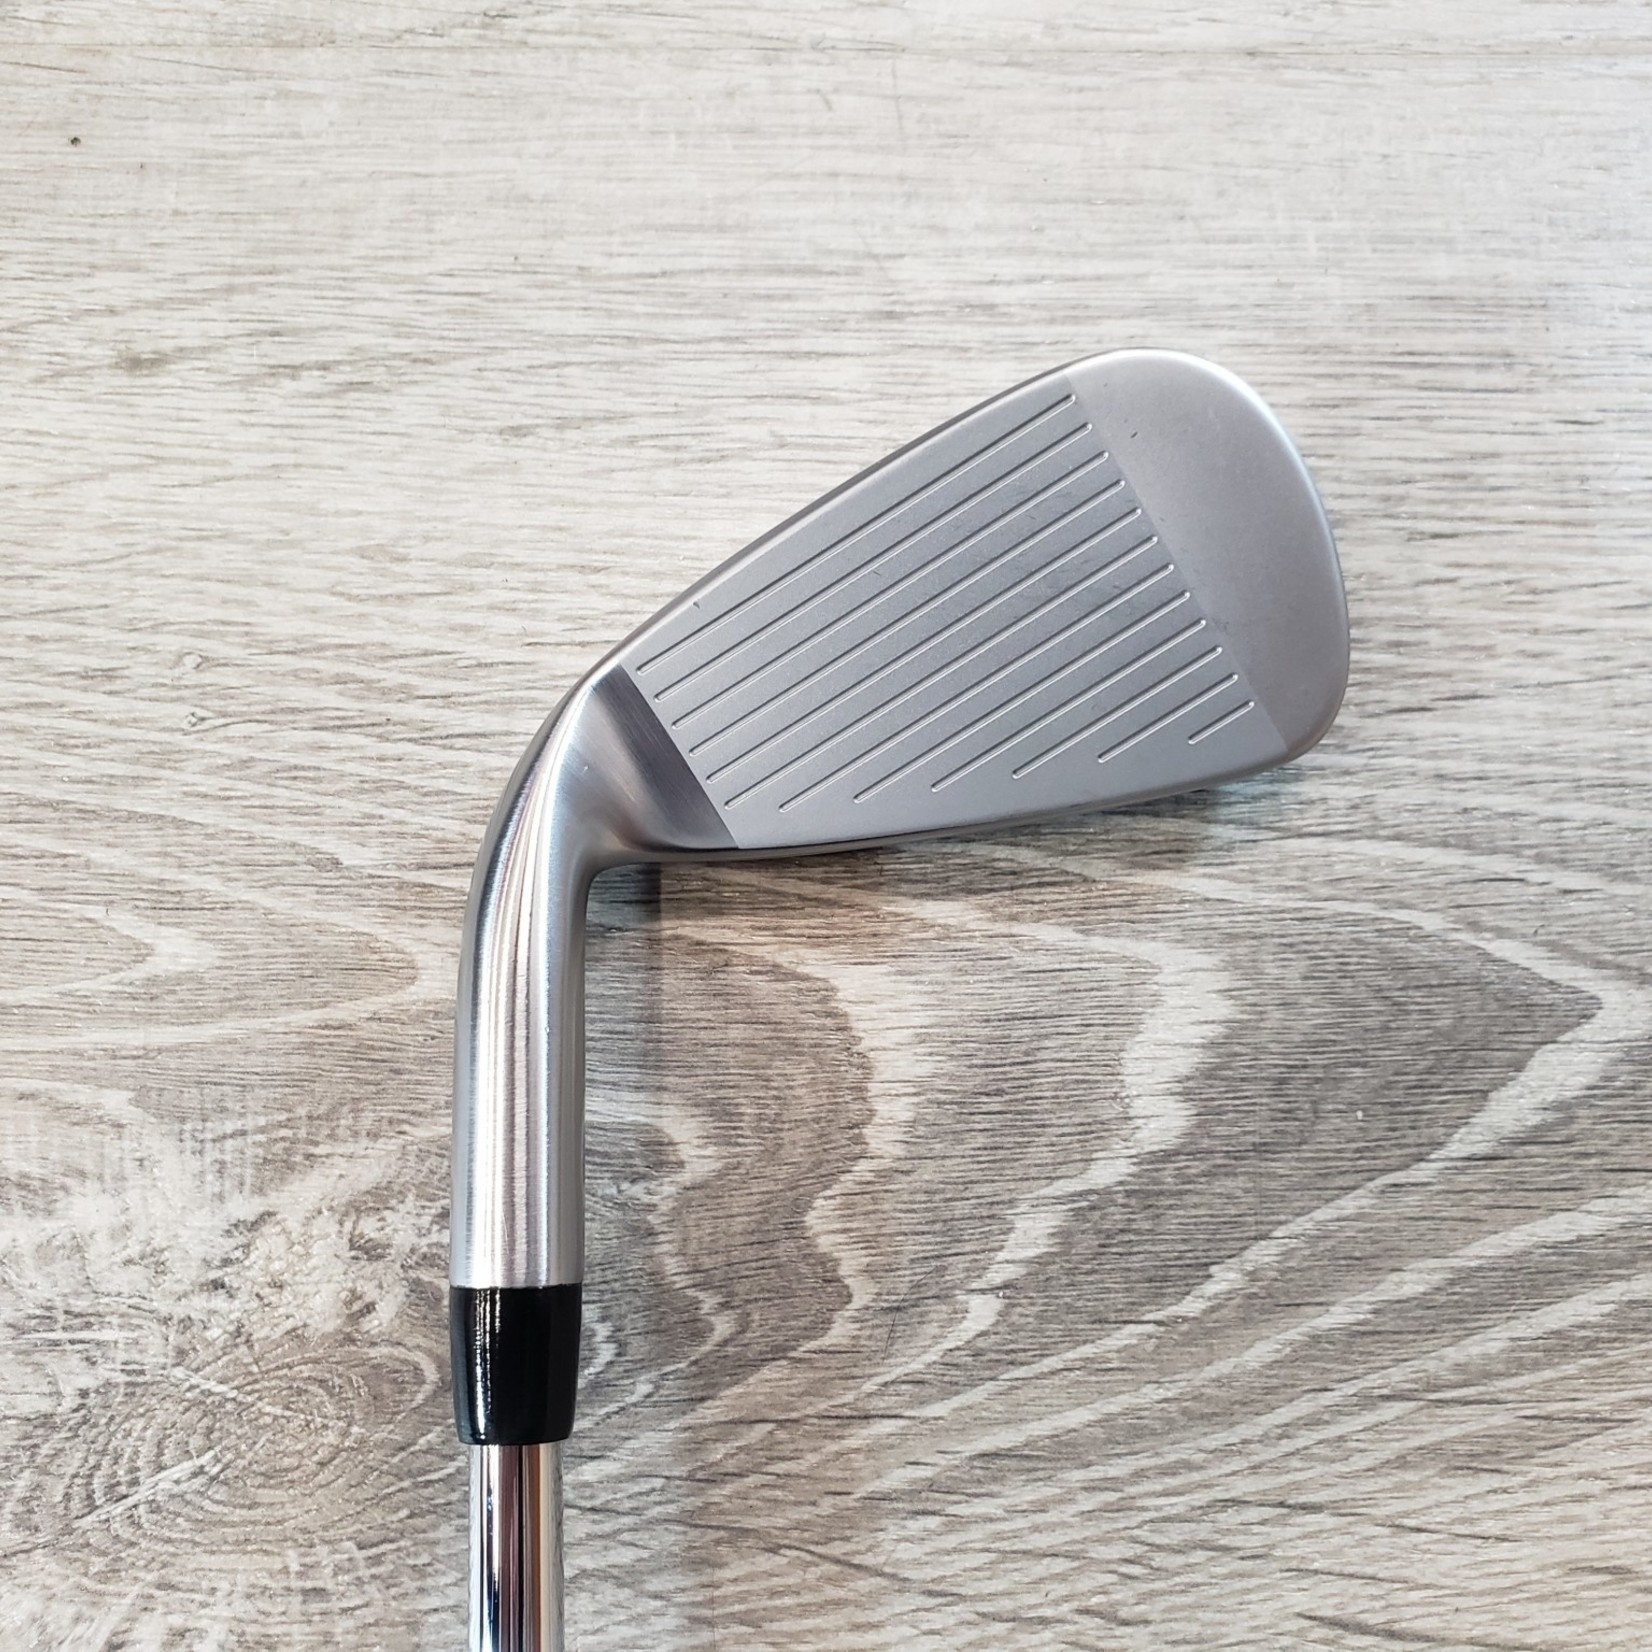 PXG (Demo) PXG Gen2 0311XF Forged 4 Driving Iron Dynamic Gold Tour Issue S400 Stiff (RH)